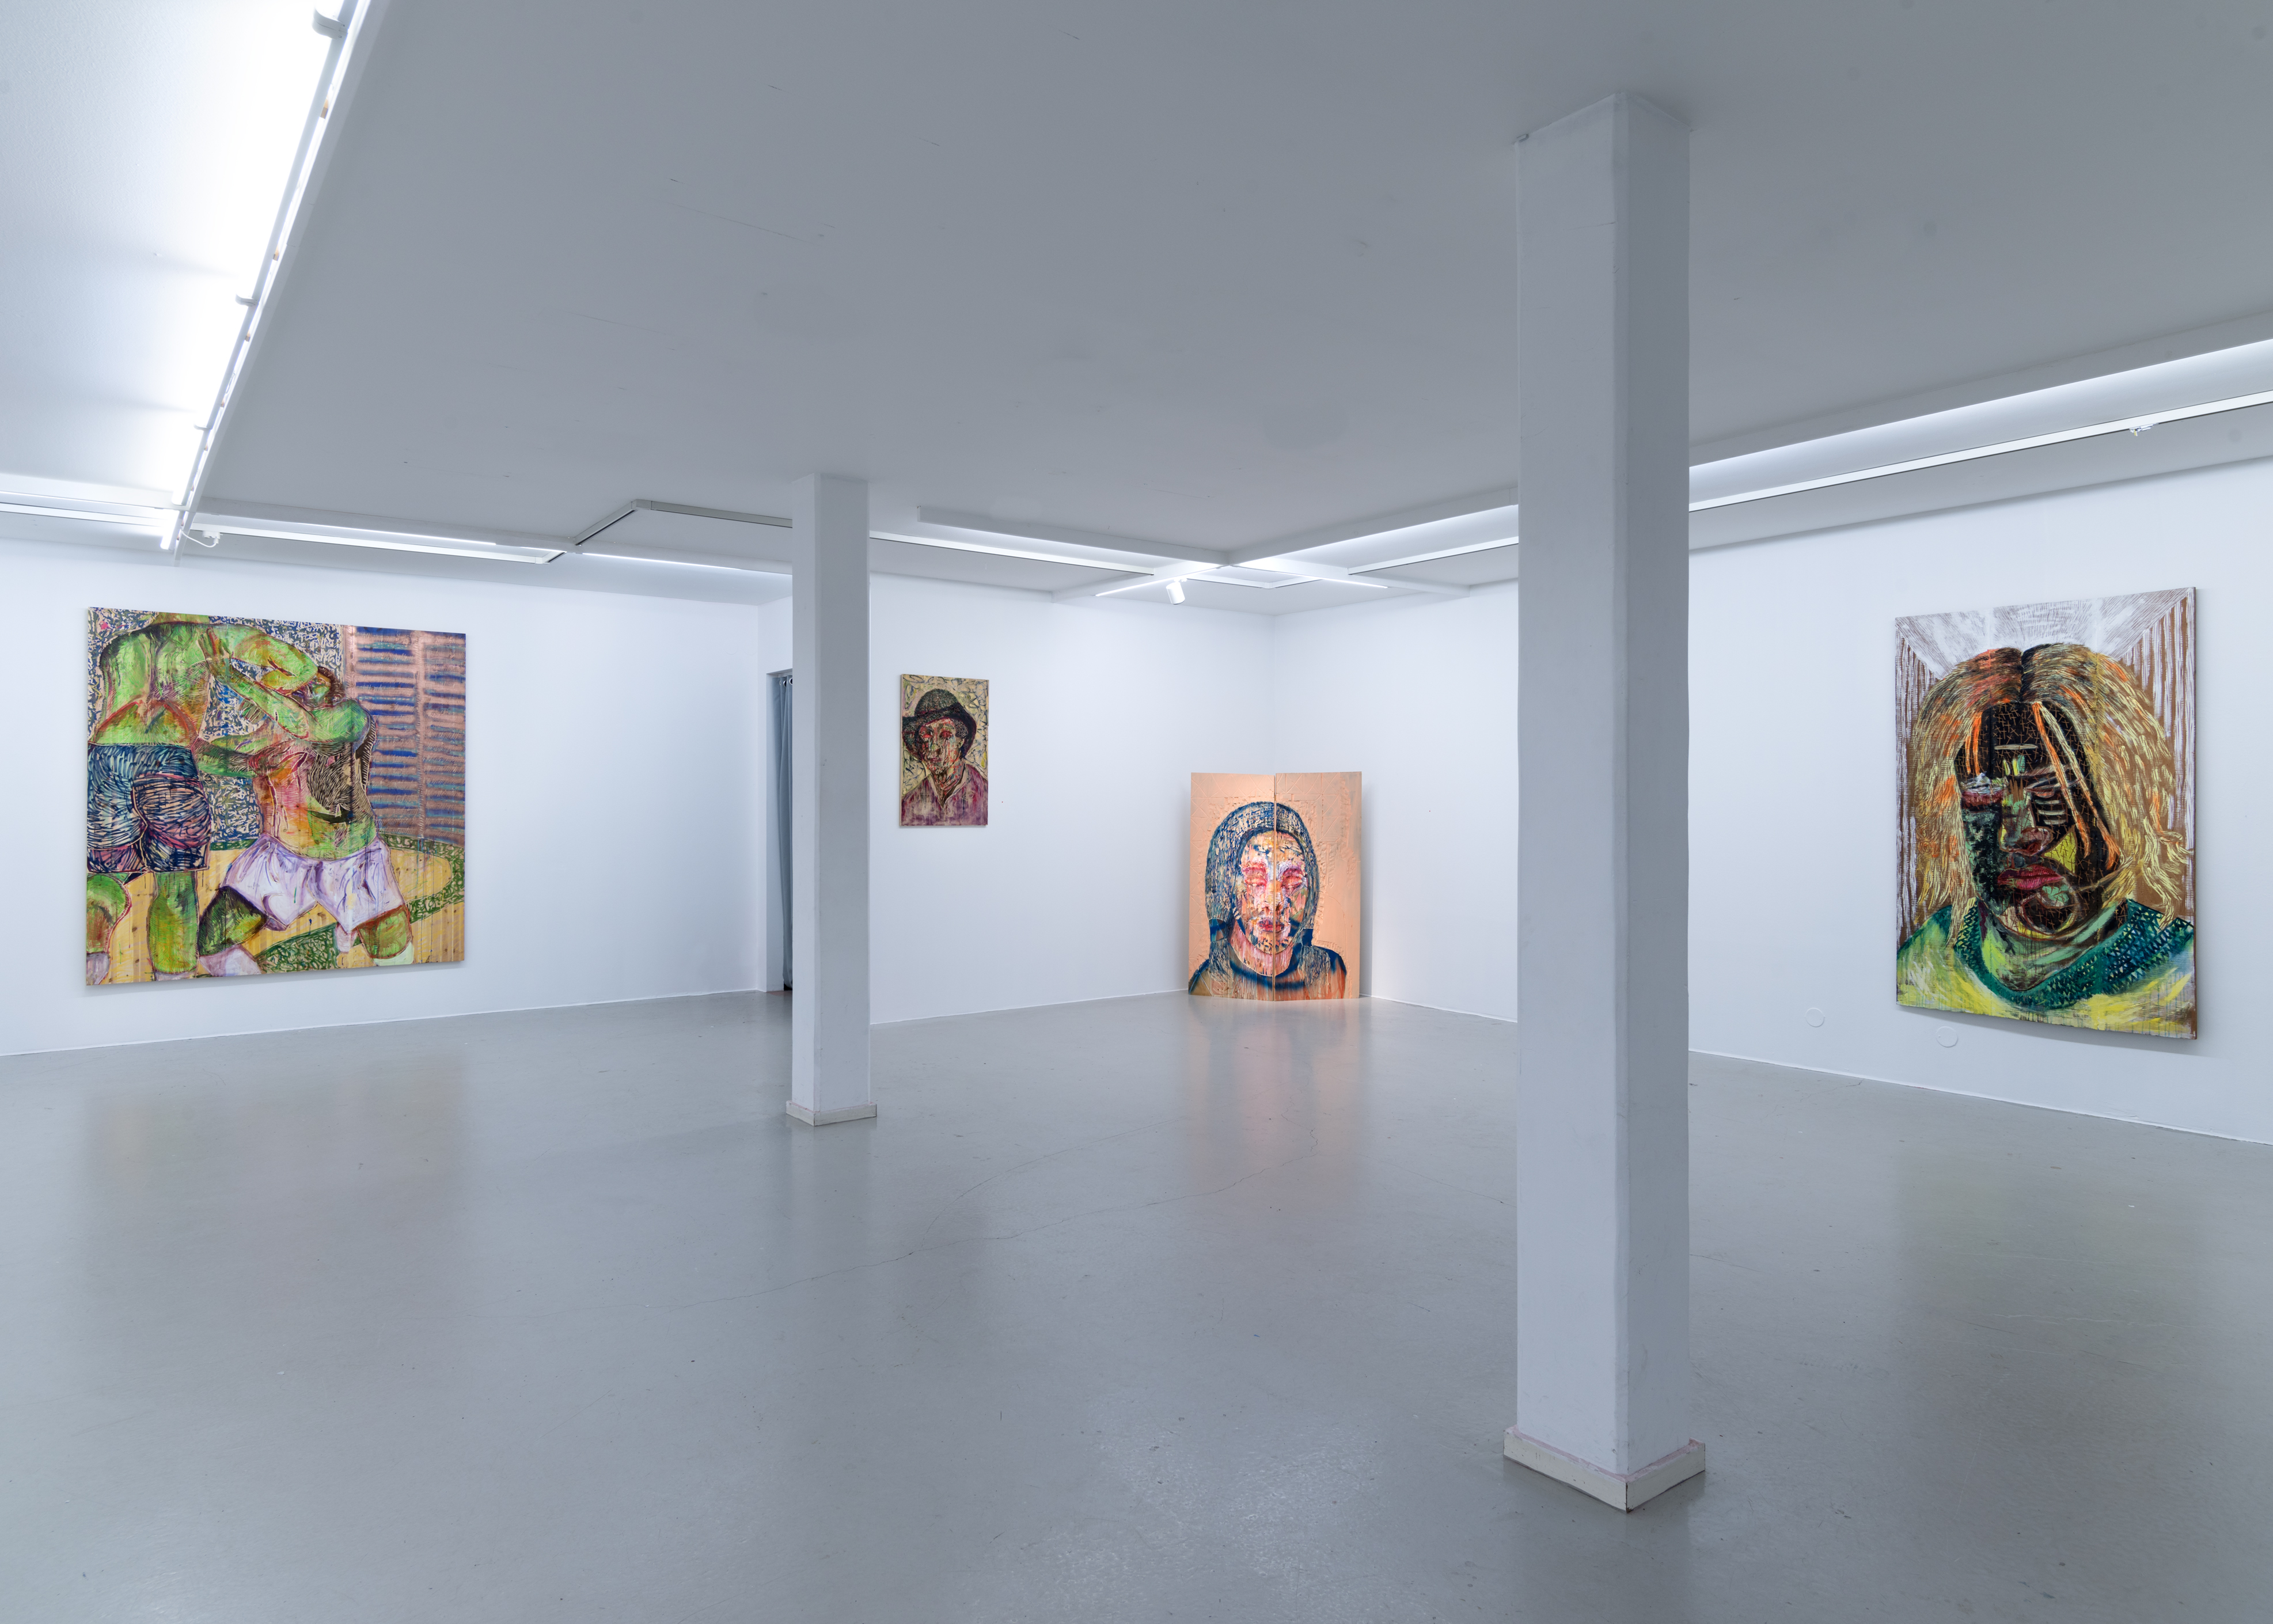 Camilla Vuorenmaa, Installation view, In The Belly of Painting, at Galleri Thomassen, 2017